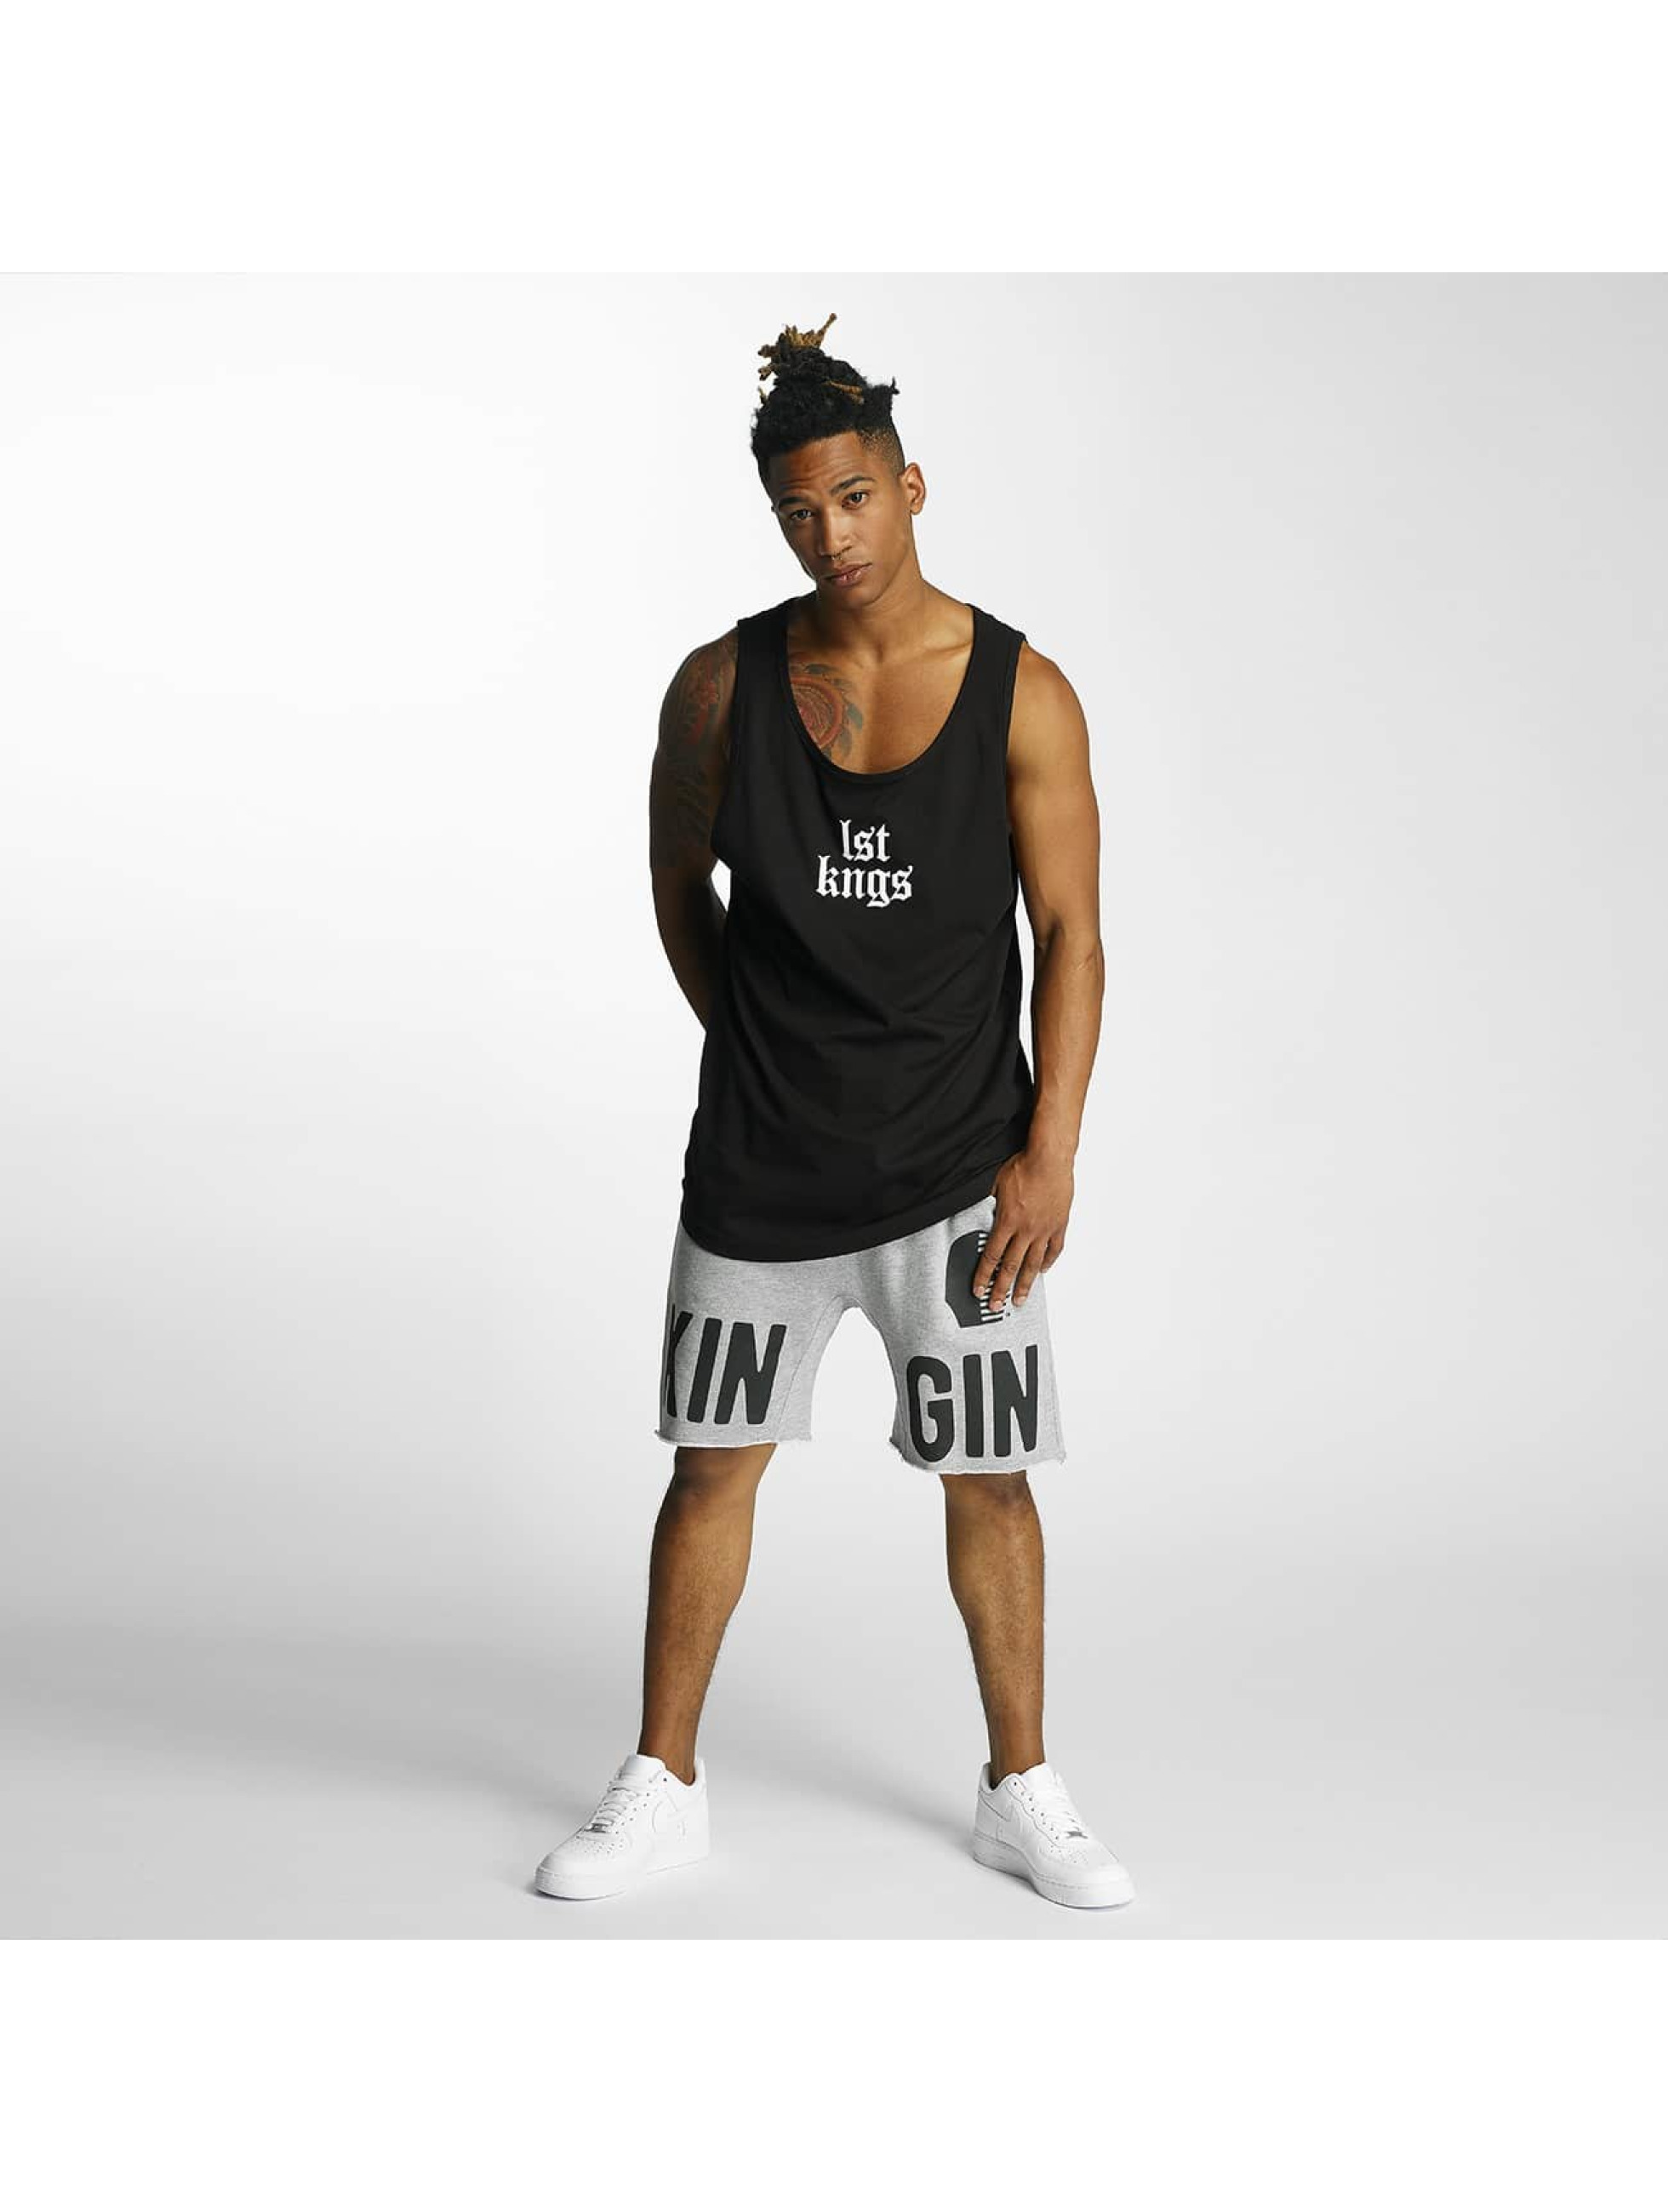 Kingin Tank Tops LK black